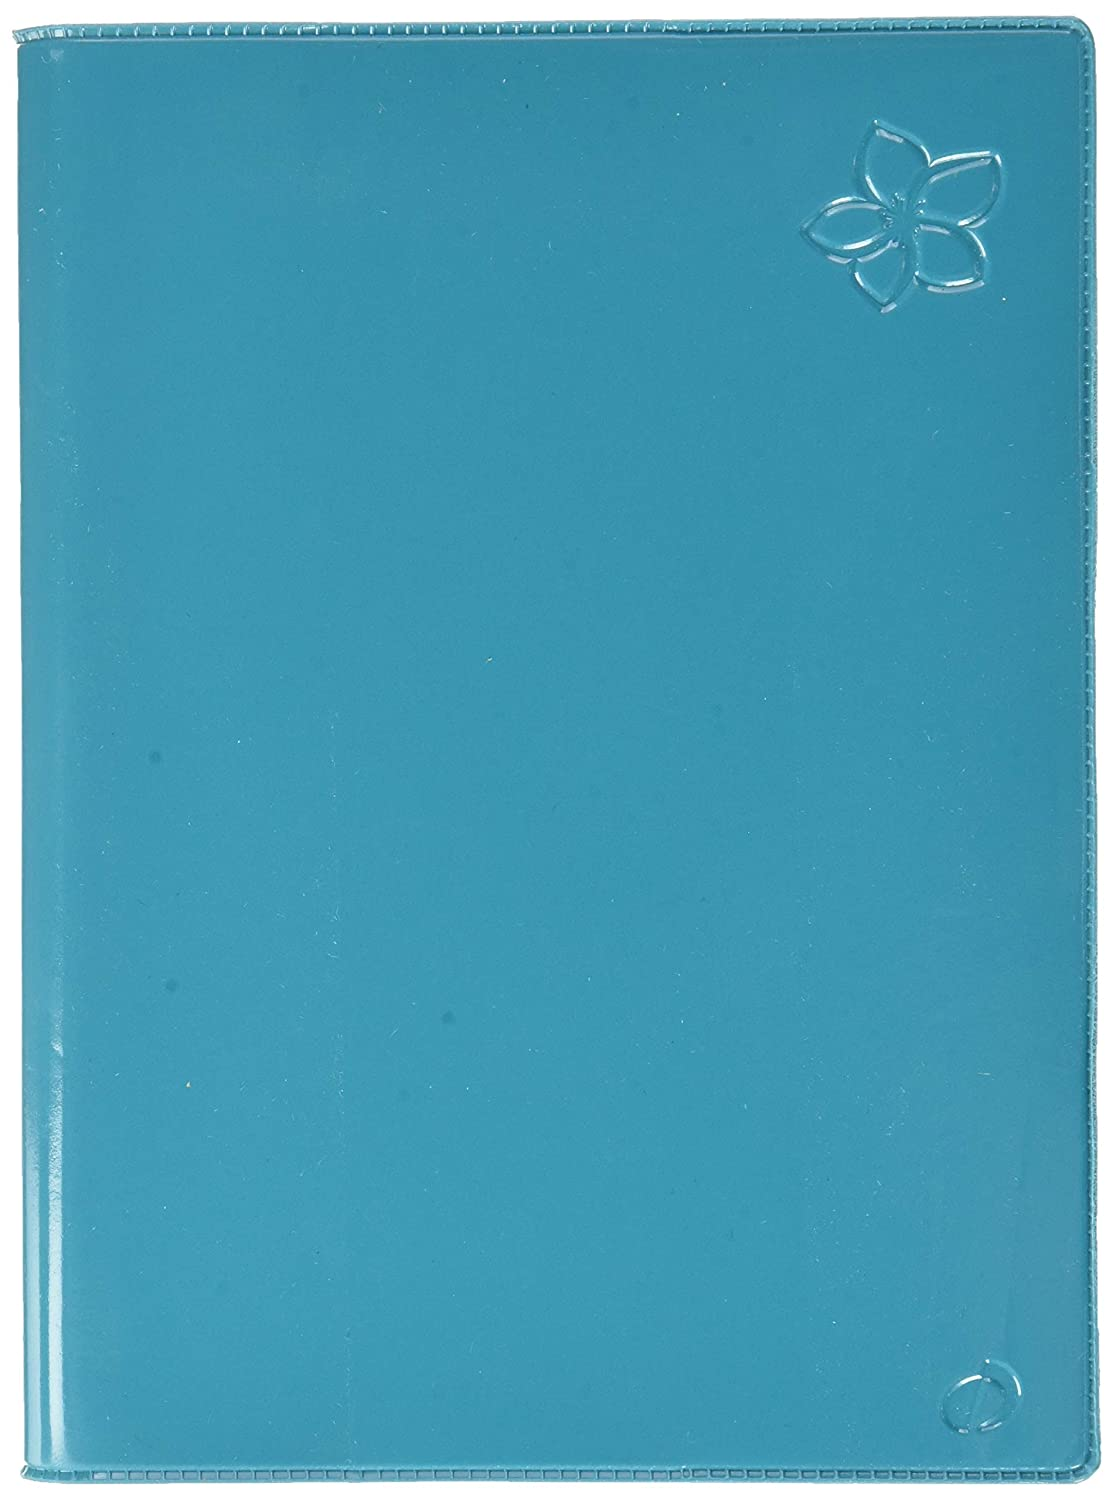 Amazon.com : Quo Vadis Fiji Textagenda Daily Academic Diary ...